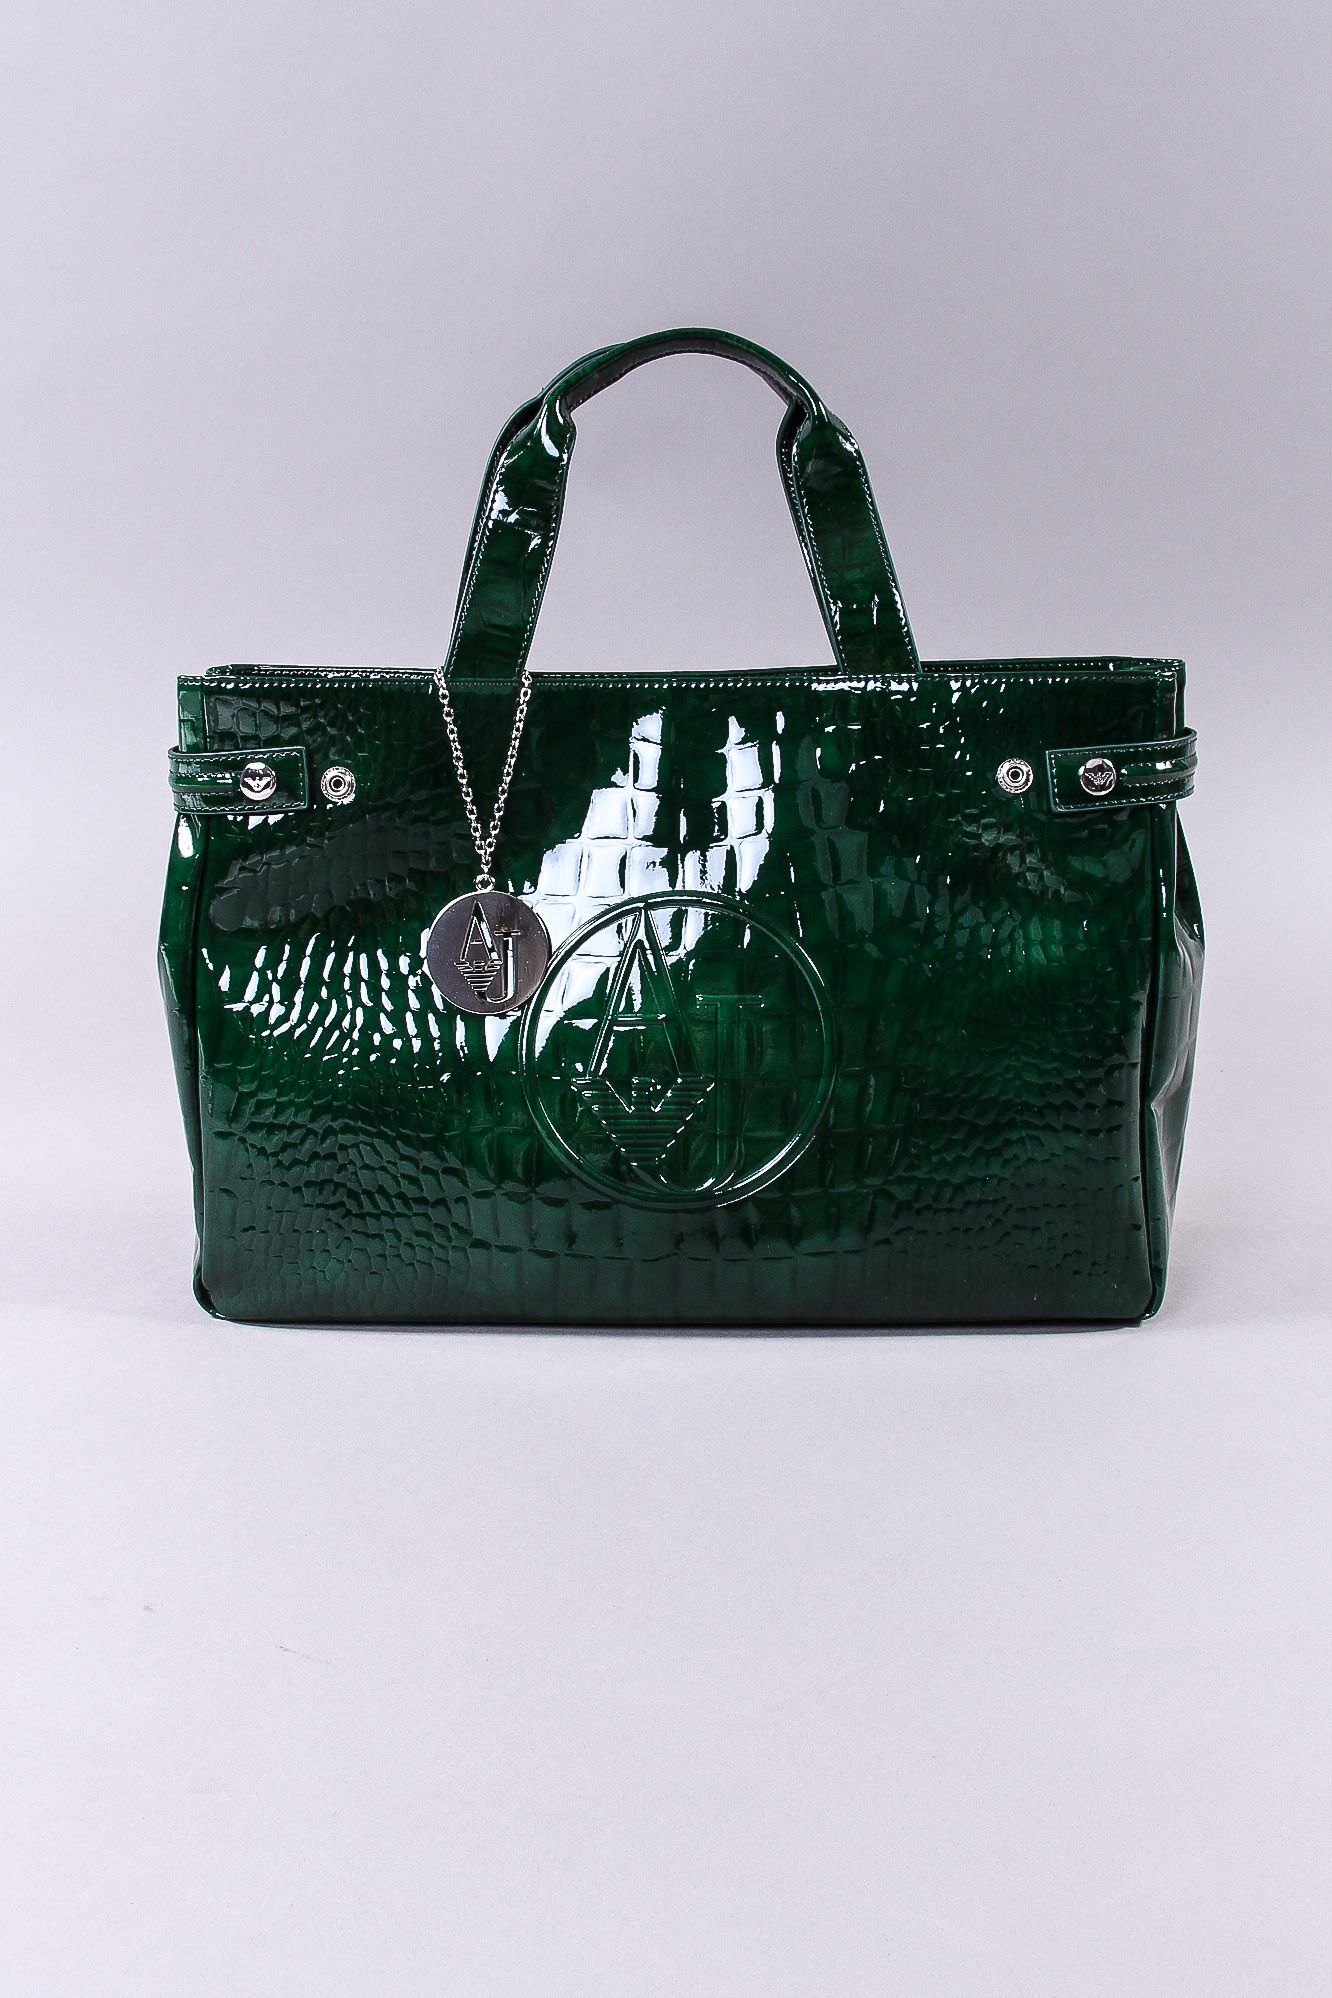 Sac A Main Armani, Crocodile, Impression, Women s Shoes, Diy Handbag, Green f7fd99532ee